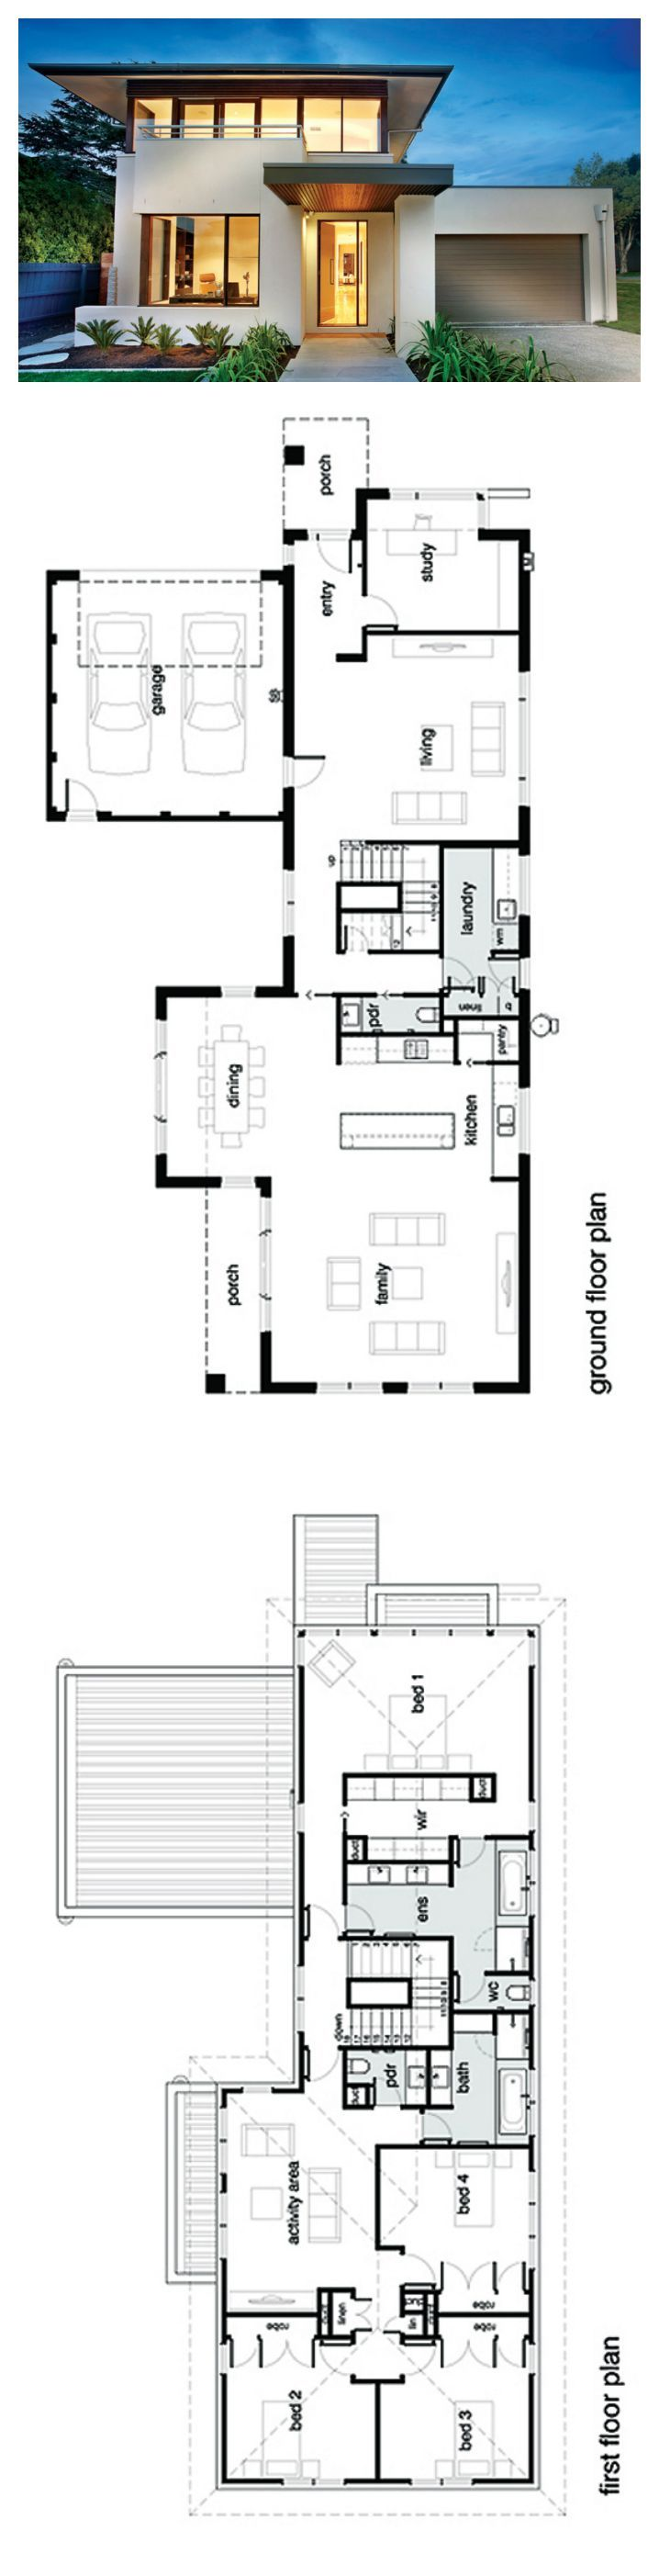 Best 25 modern house plans ideas on pinterest modern floor plans modern house floor plans Story floor plans with garage collection